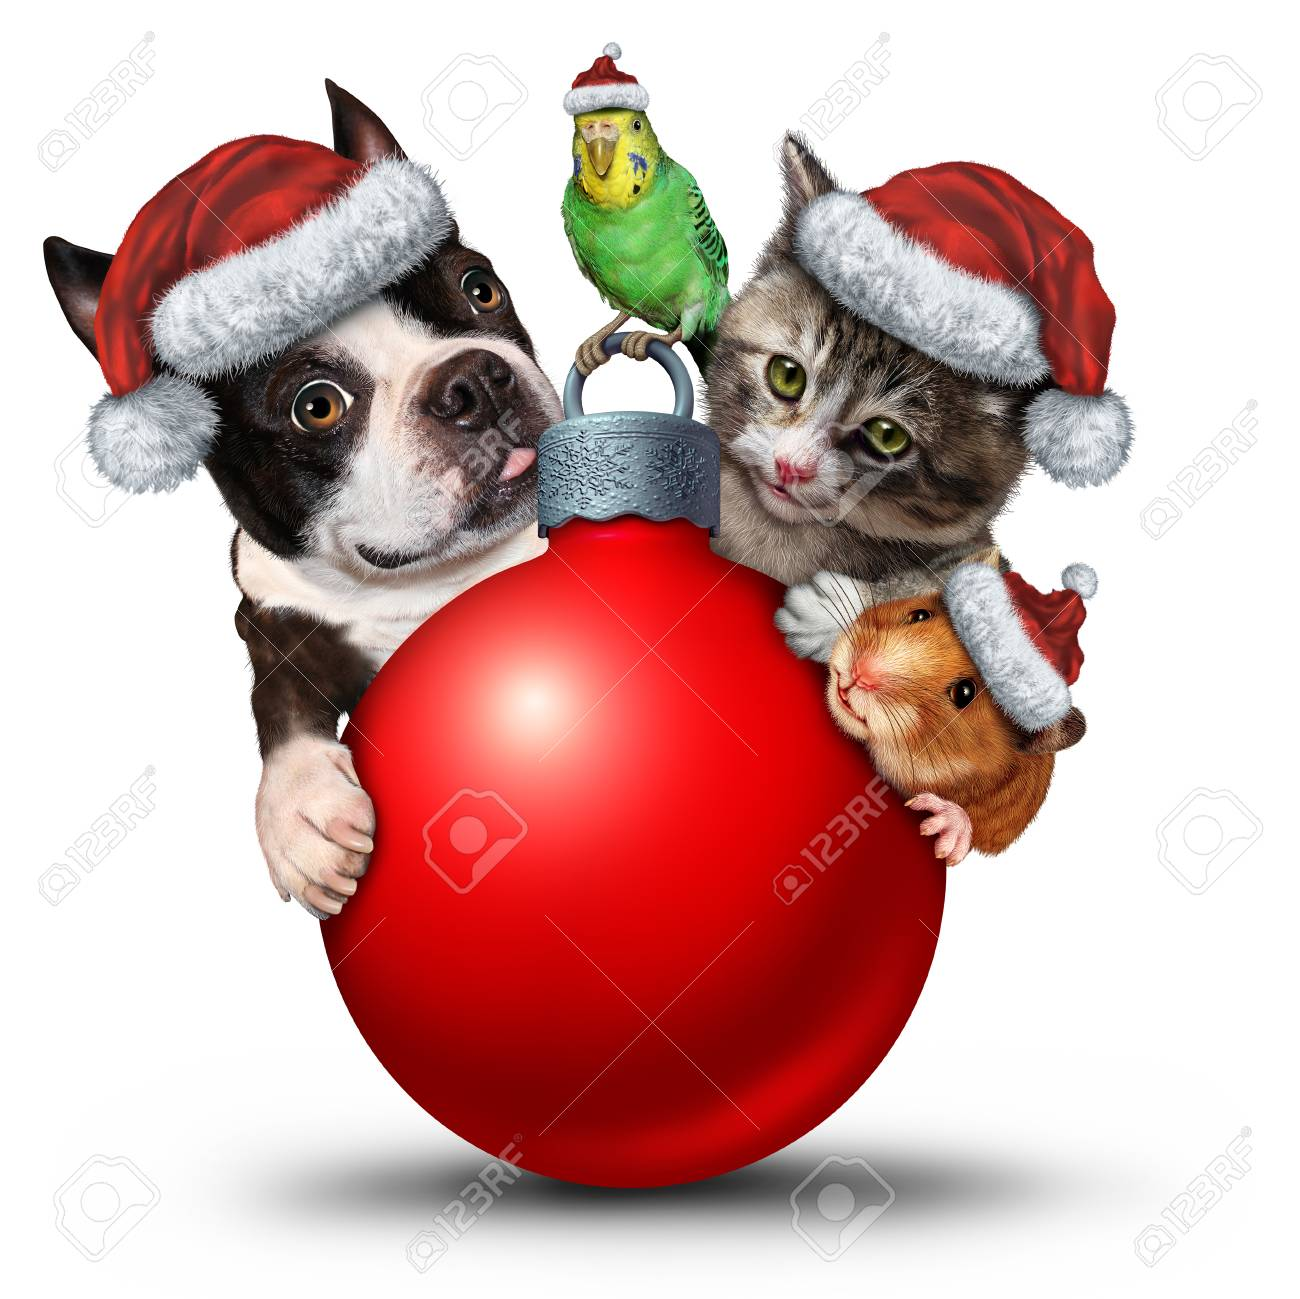 Christmas 10x12 FT Backdrop Photographers,Xmas Crew Cat Dog Bird Mouse and Rabbit Bunny with Santa Hats Grumpy Pets Picture Background for Baby Birthday Party Wedding Vinyl Studio Props Photography